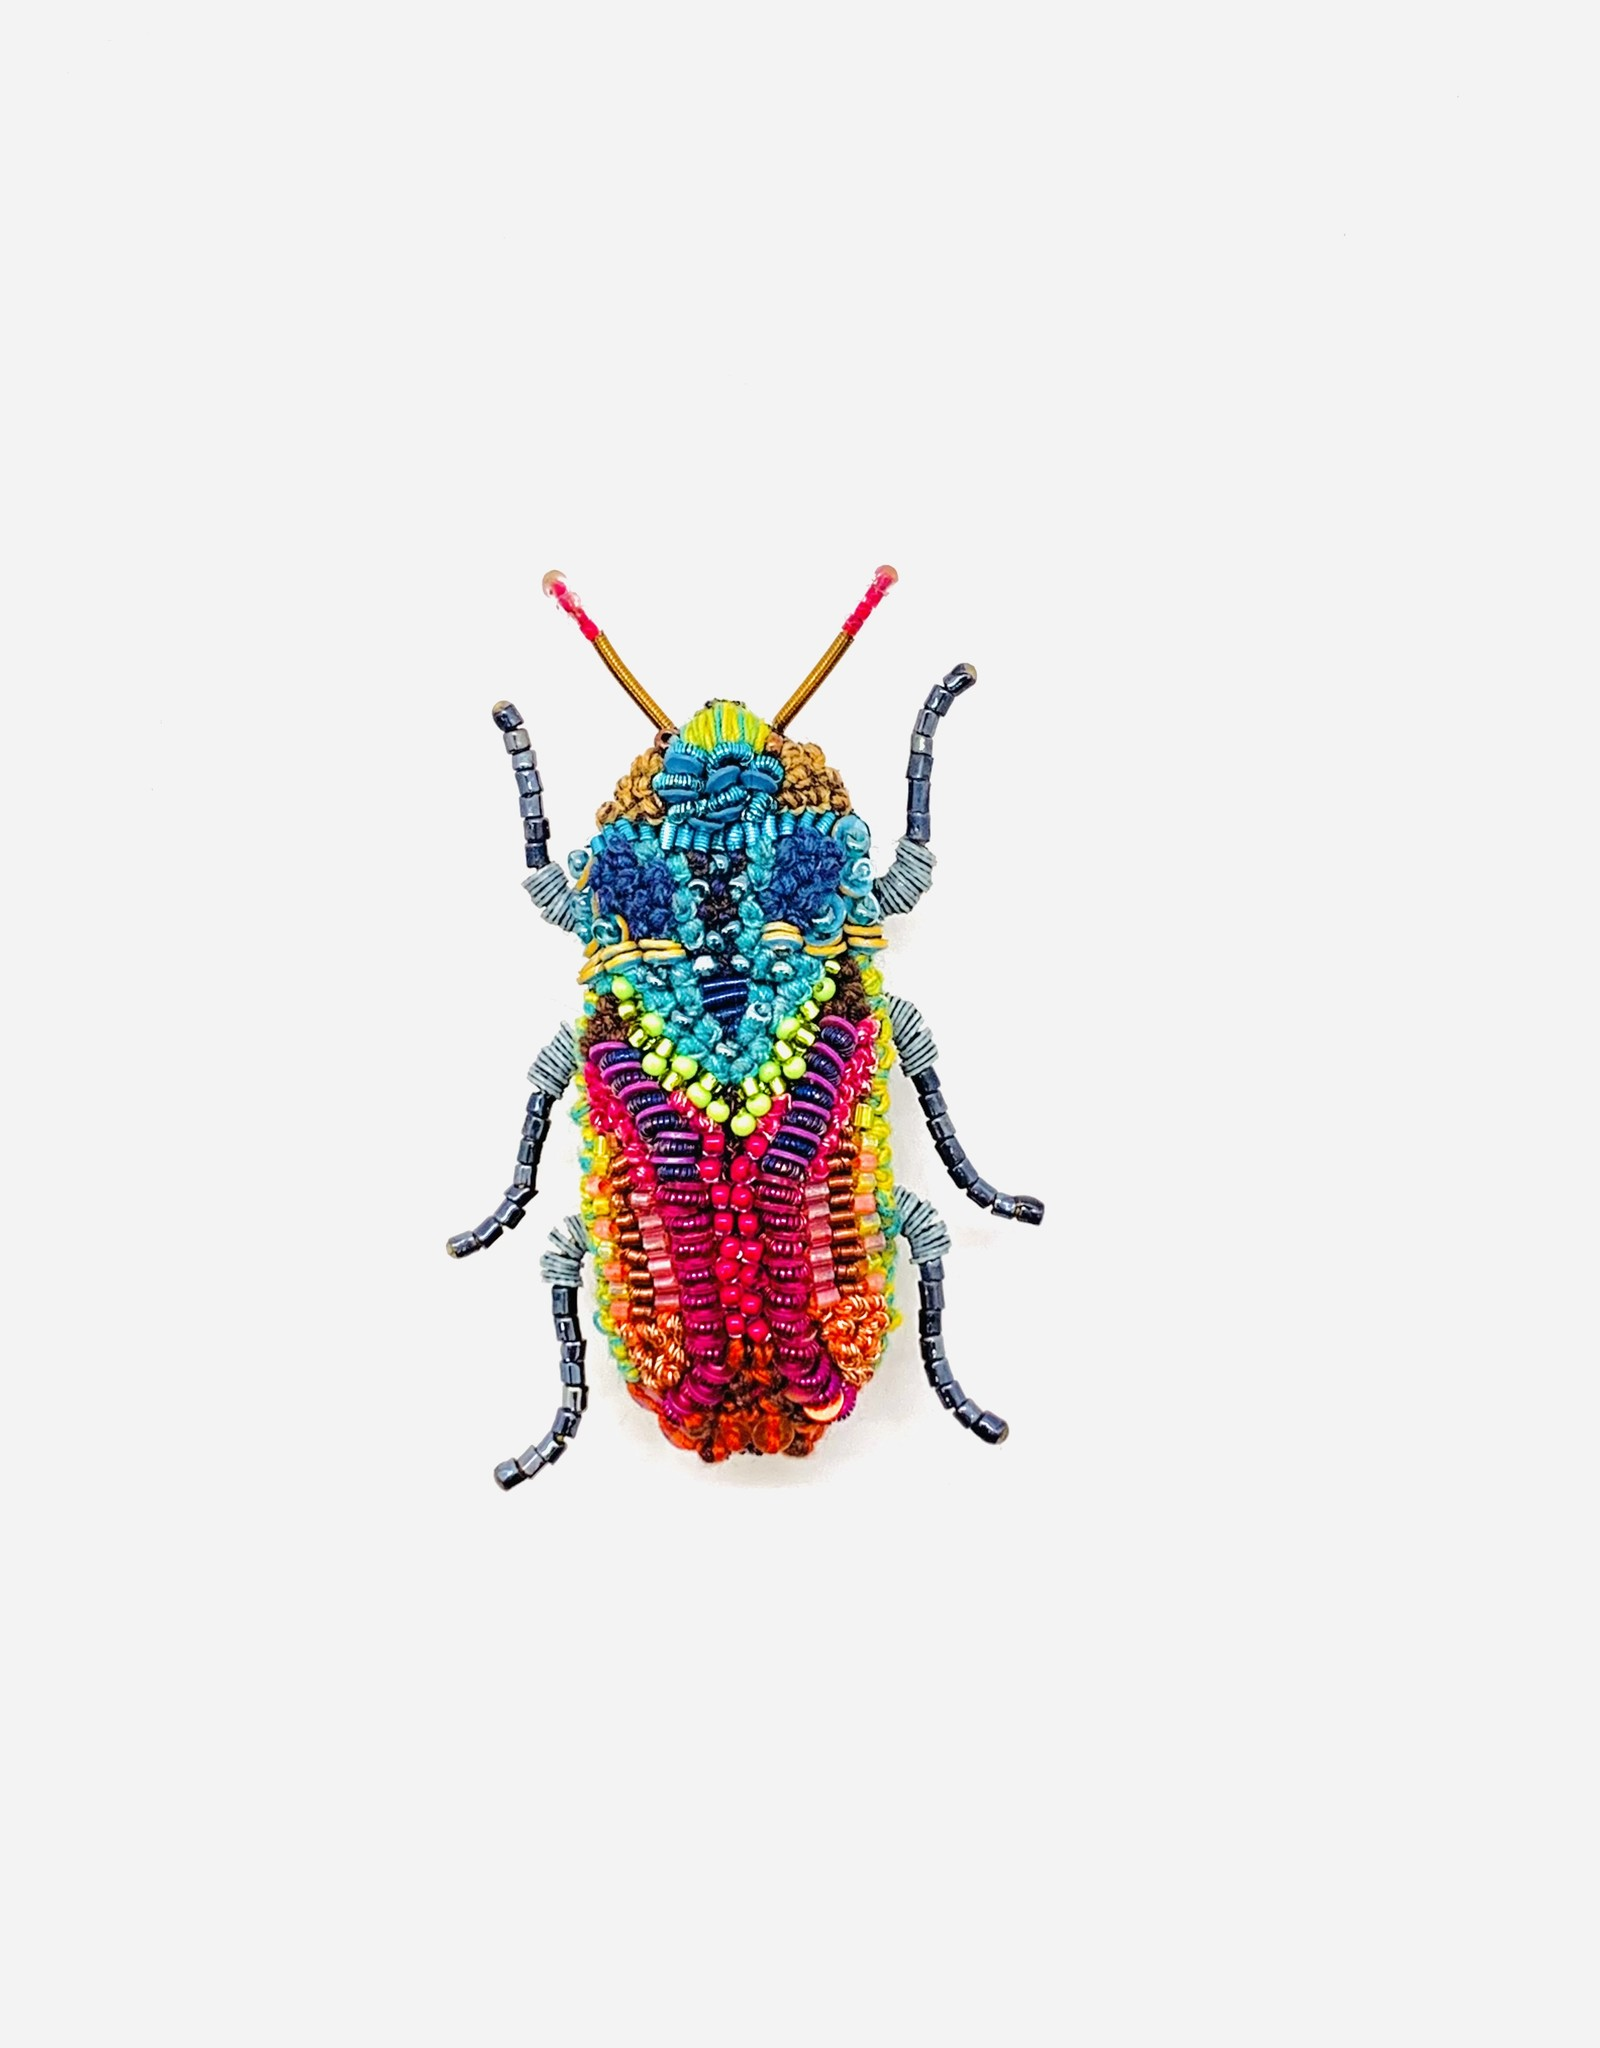 Moroccan Jewel Beetle Brooch